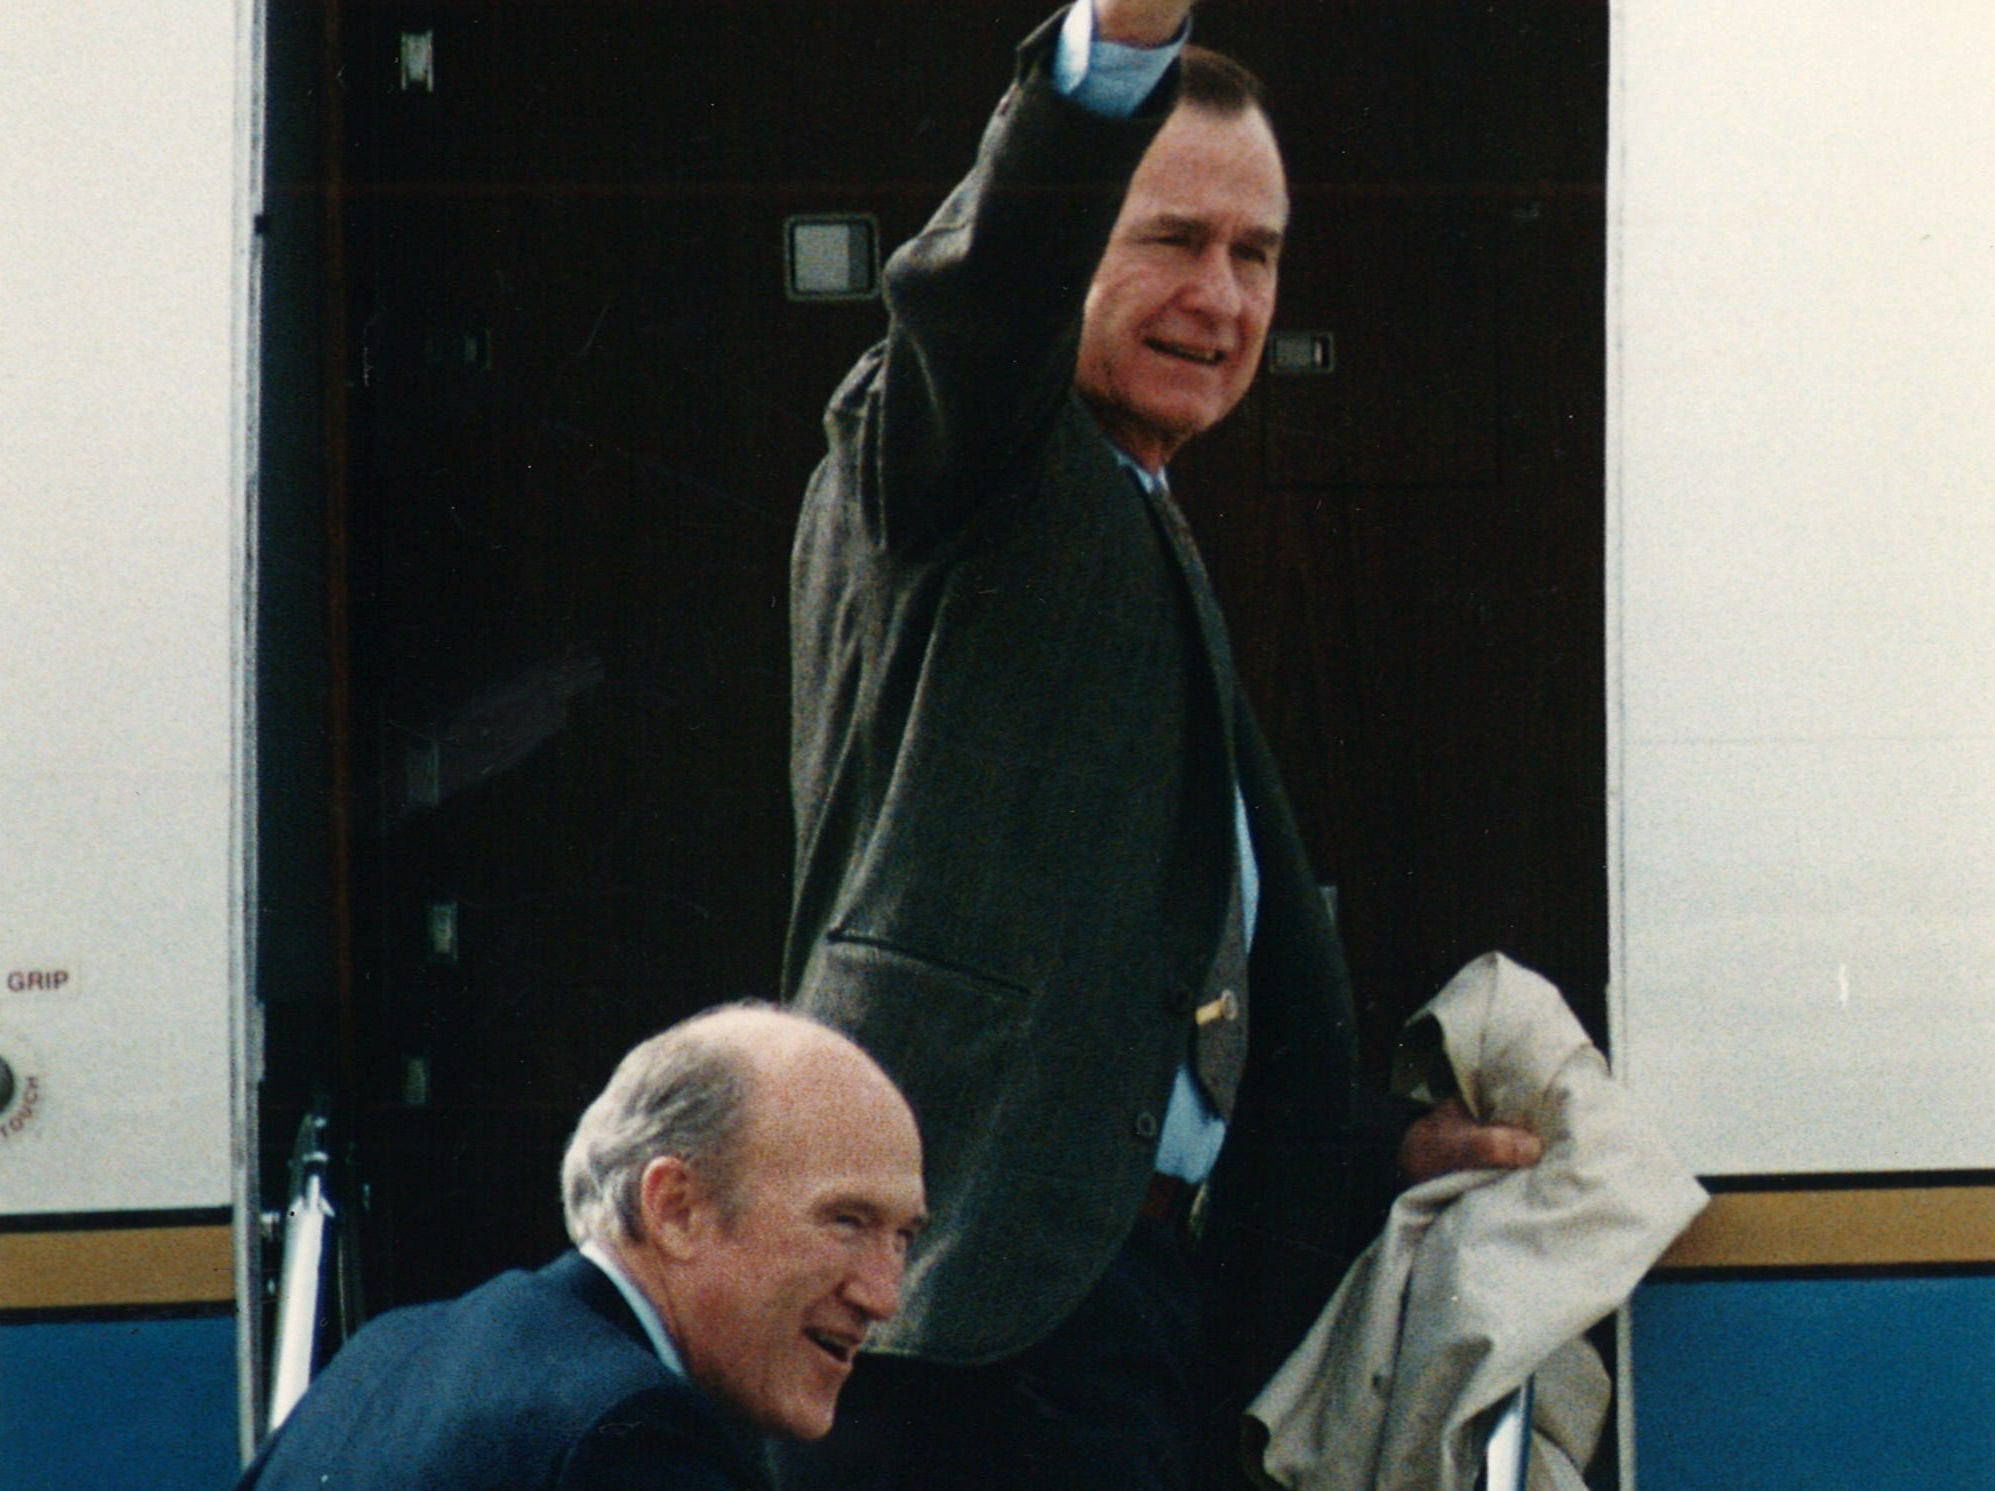 U.S. President George Bush aves to a handful of well-wishers as he and U.S. Senator Alan Simpson board their plane and leave Naval Air Station Chase Field in Beeville, Texas in December 1991.